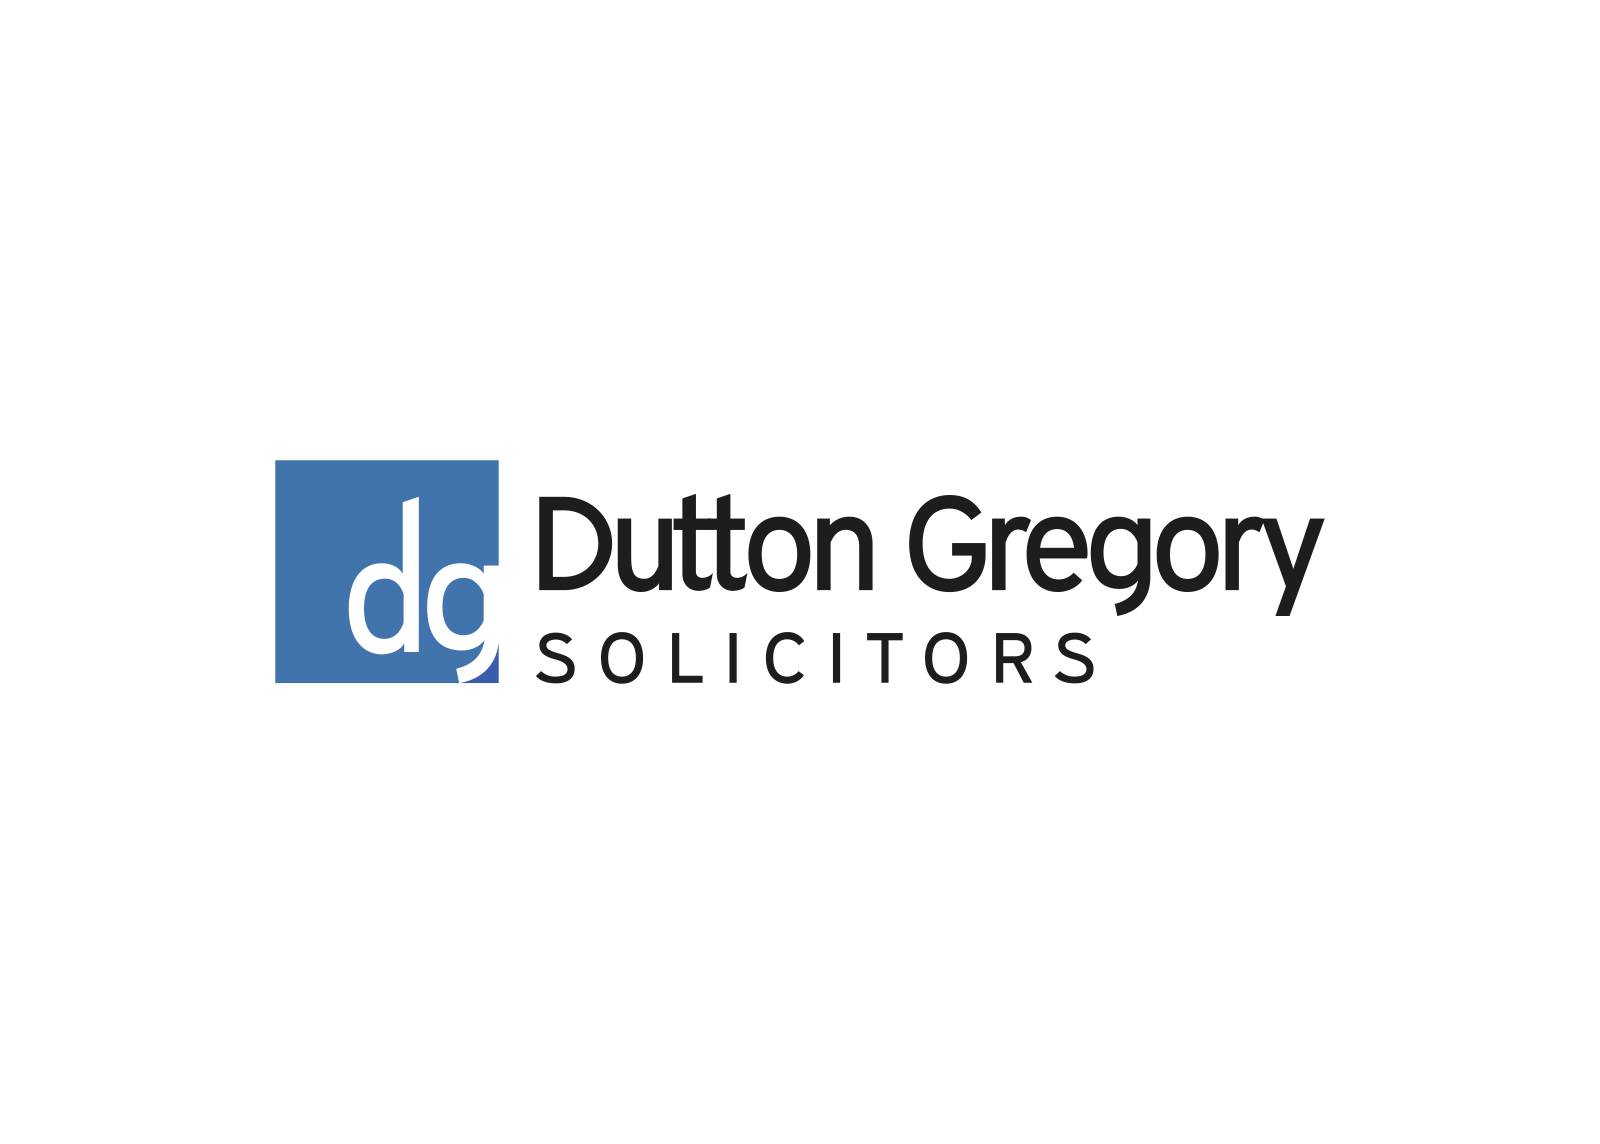 SDLT Reminder- Dutton Gregory Solicitors